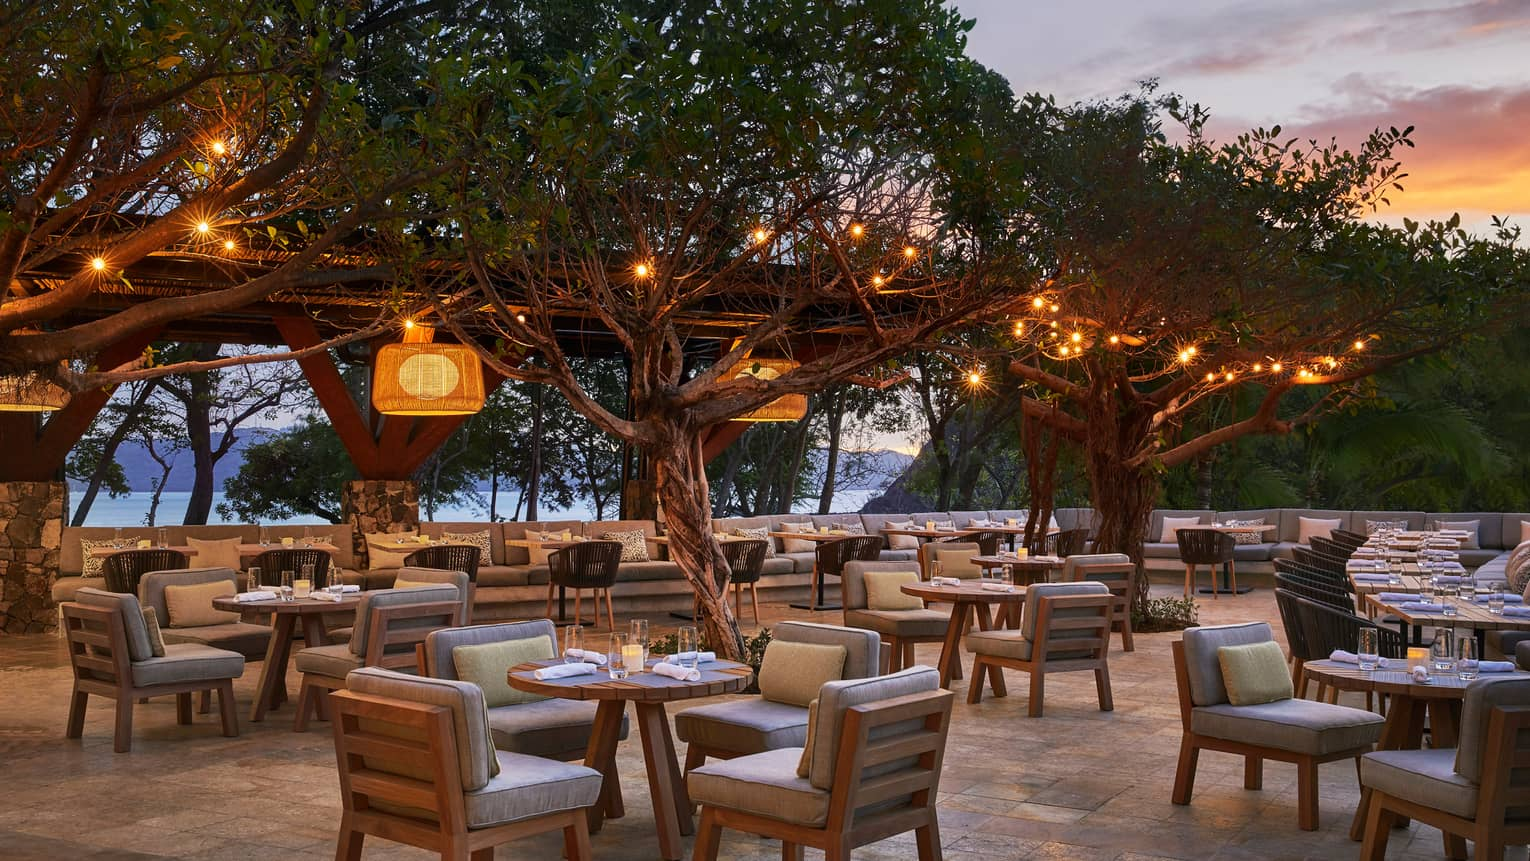 Patio tables, chairs with plush cushions on patio under trees with hanging lights, at sunset